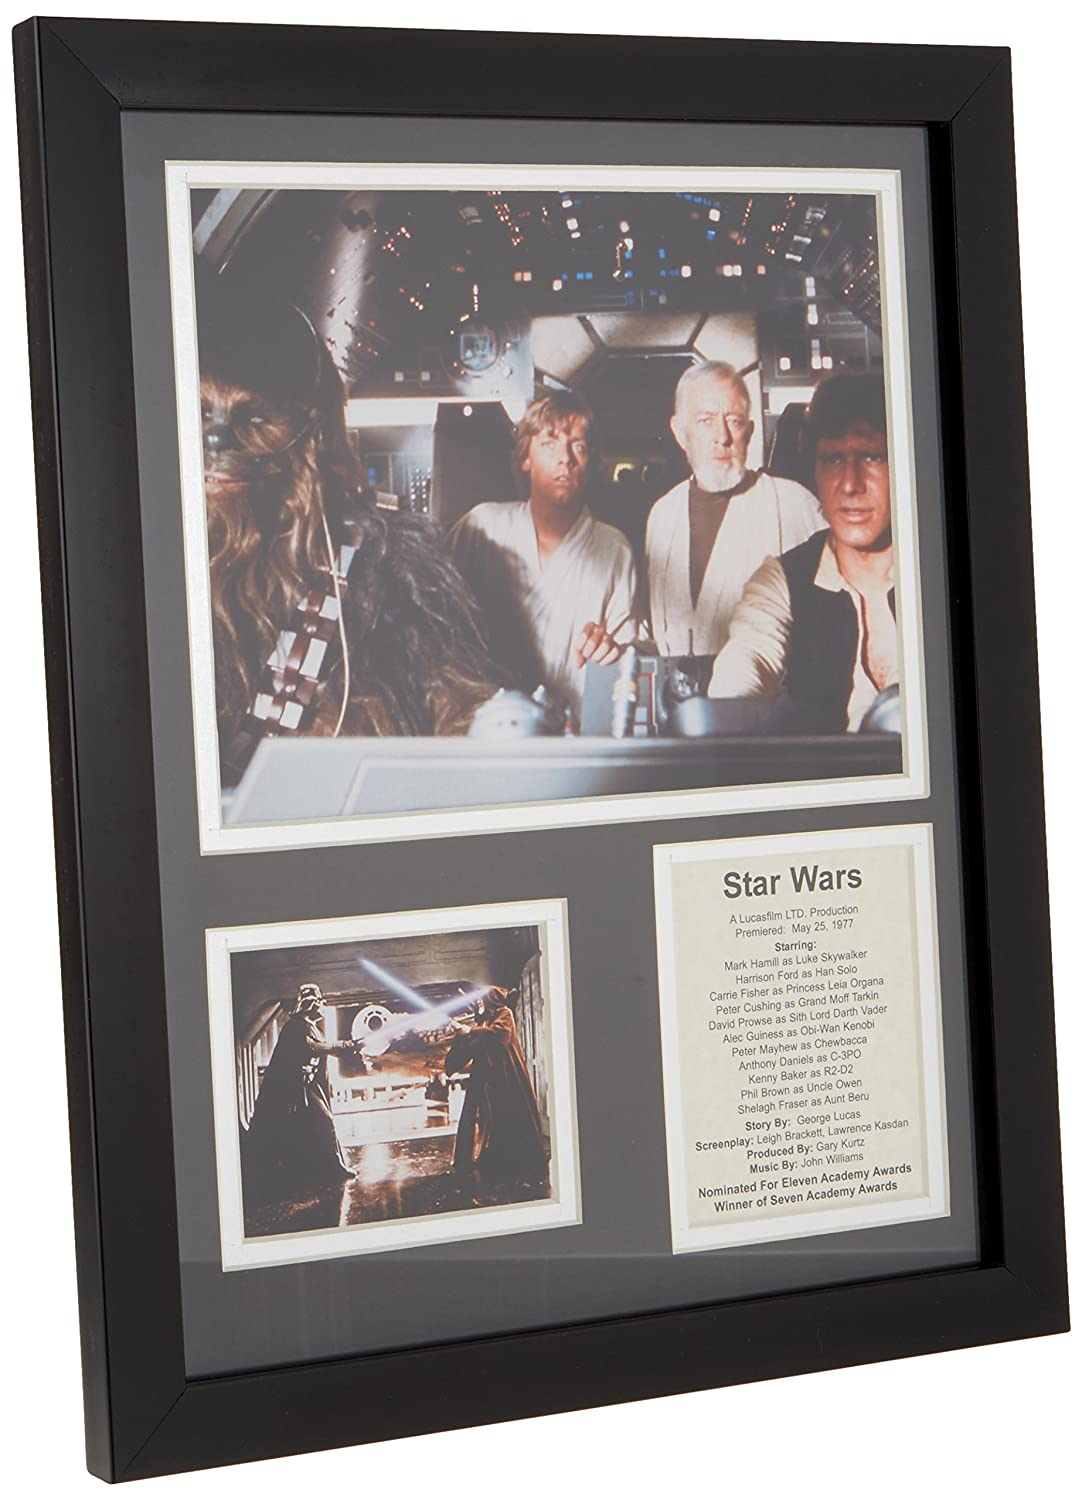 Amazon.com - Legends Never Die Star Wars Action Framed Photo Collage, 11 by 14-Inch - Decorative Plaques